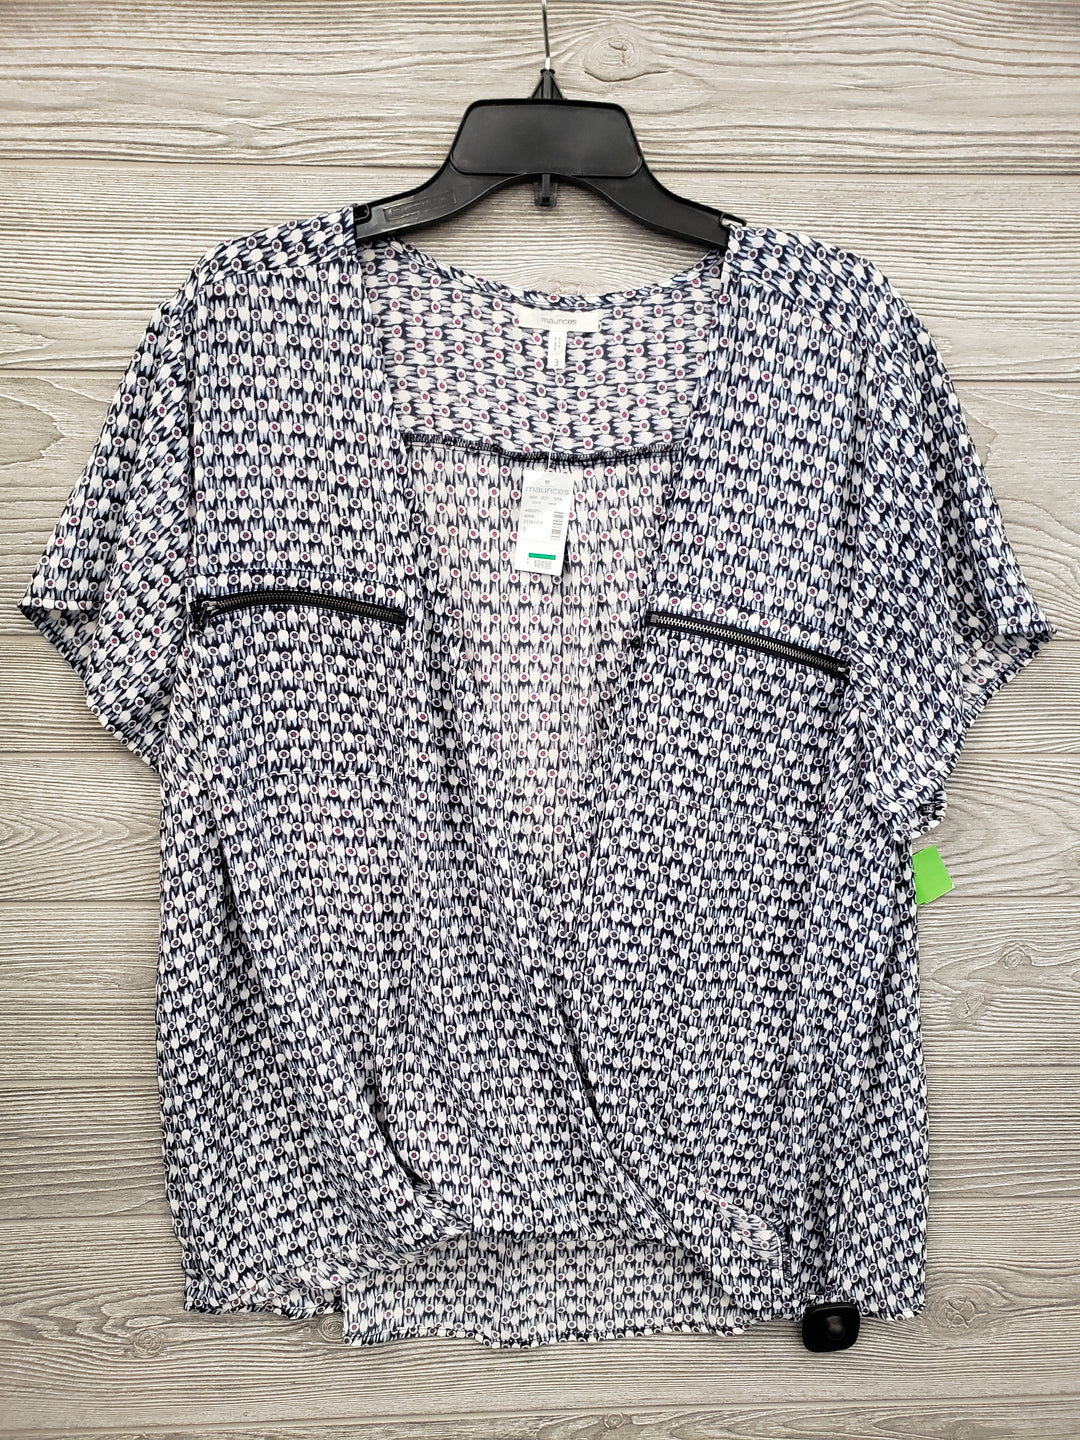 SHORT SLEEVE TOP MAURICES SIZE 3X -